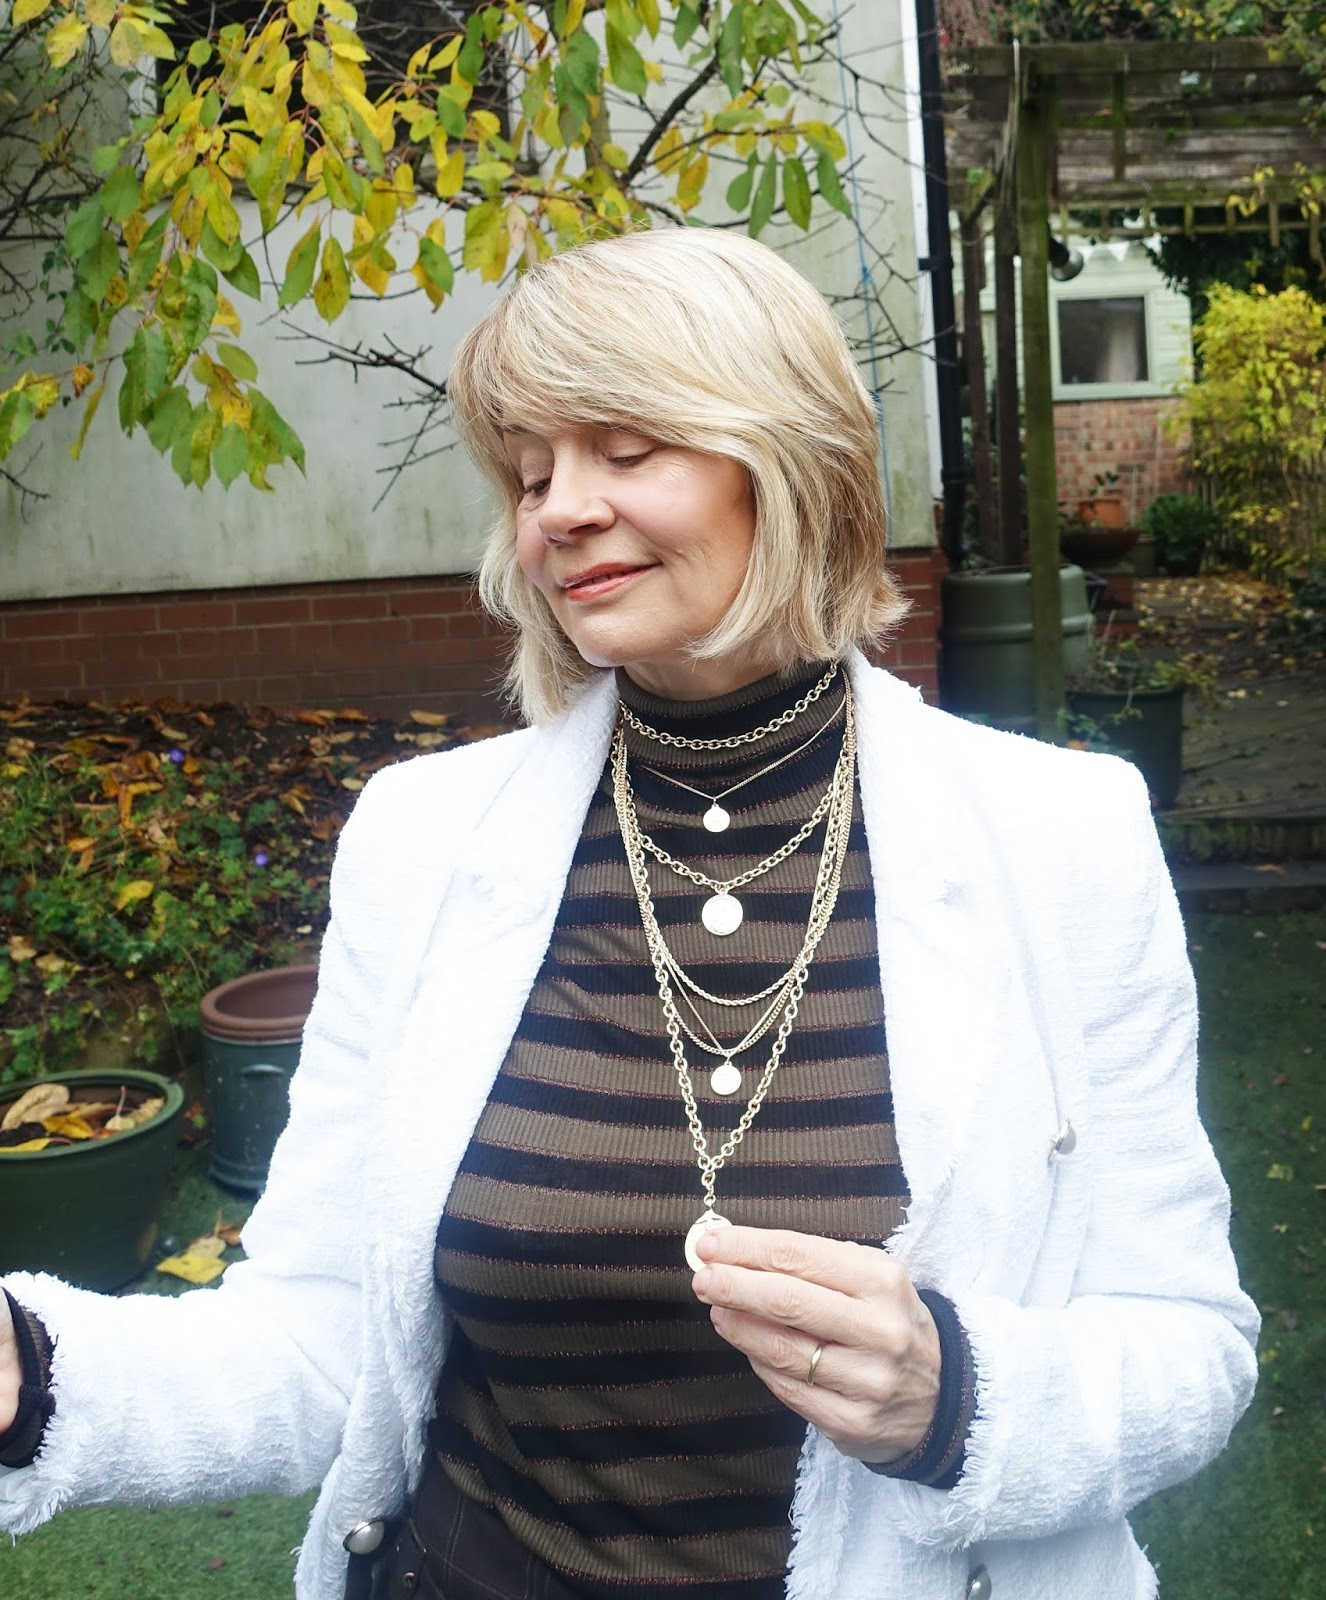 Brown Oxford Bag trousers from the 1990s worn with a mock neck lurex striped jumper, white jacket and layered coin necklace by over-50s style blogger Is This Mutton?